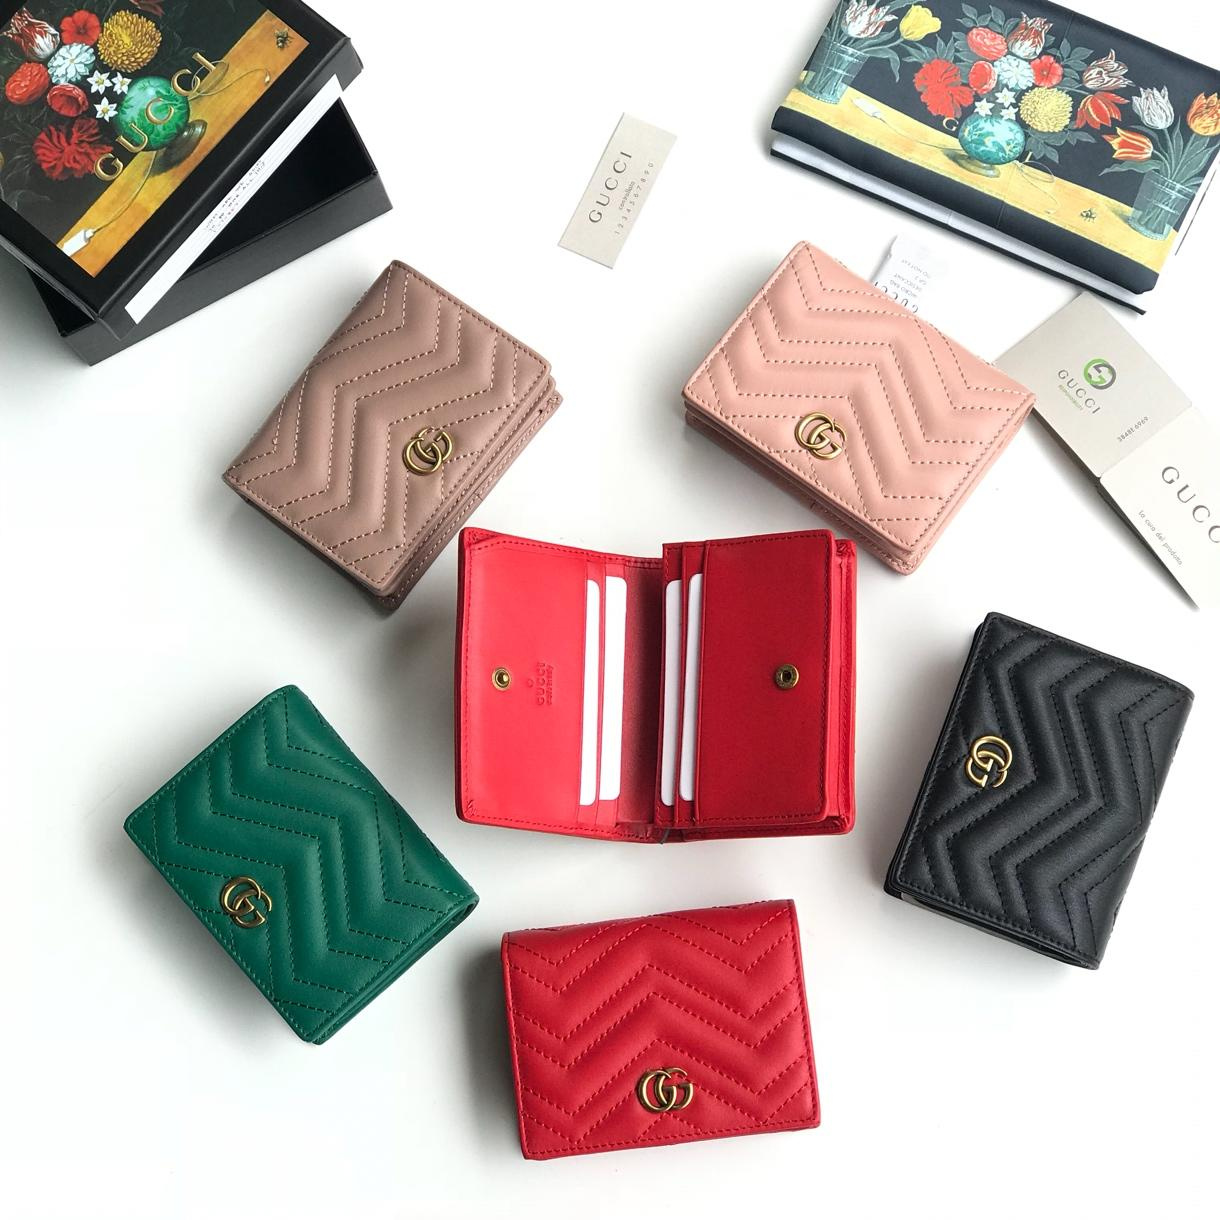 Top Quality Gucci 466492 Women GG Marmont Card Case Wallet